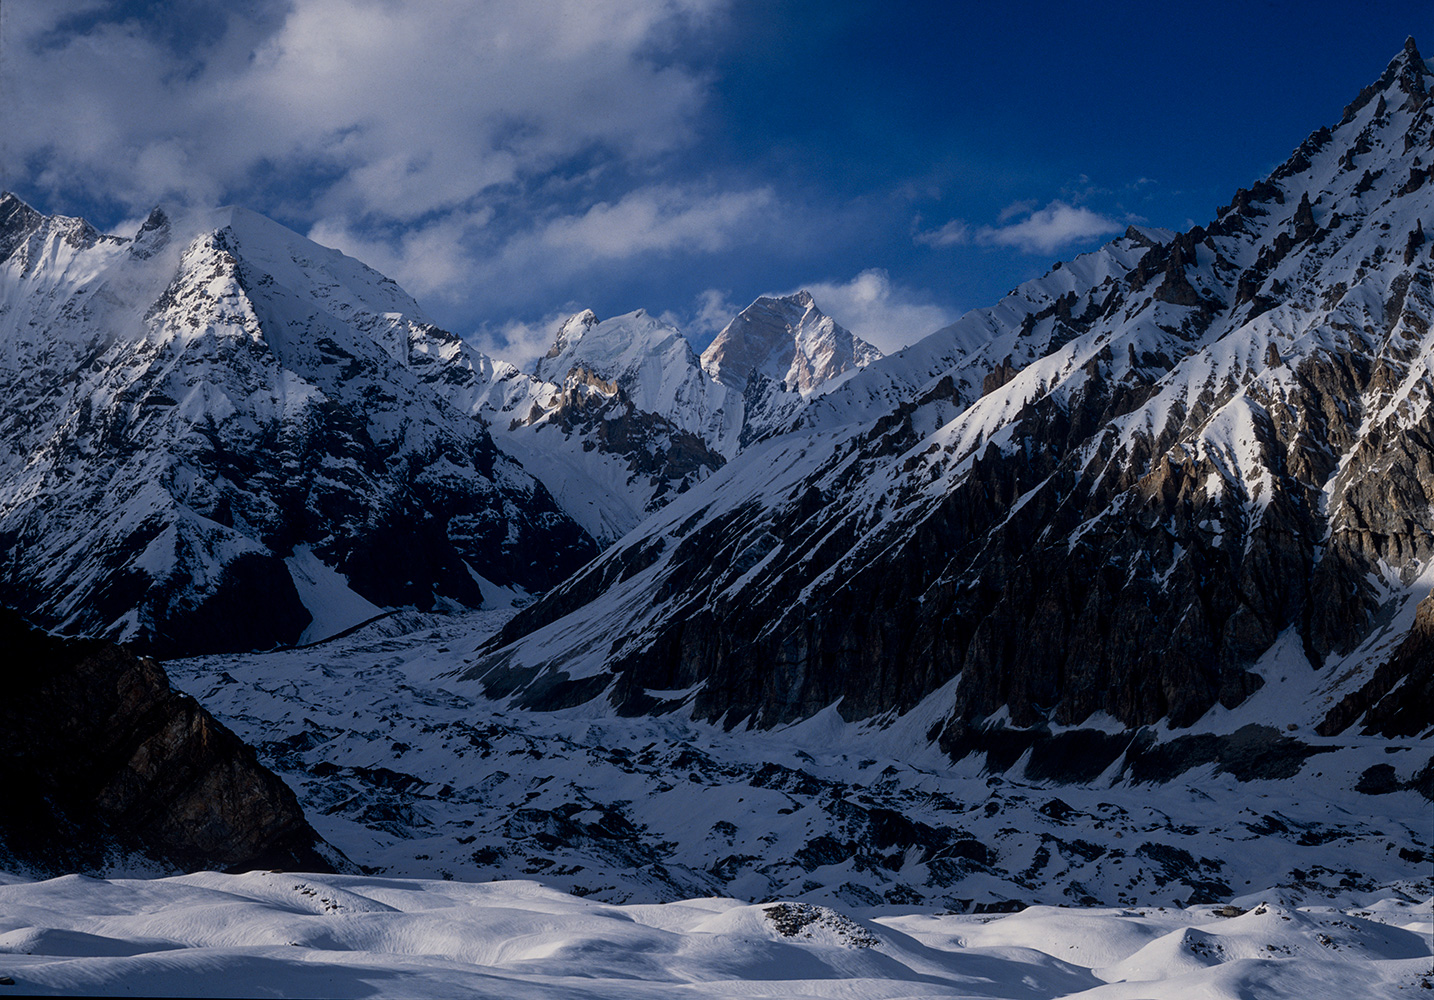 This rarely seen aspect of the mountain is tantalisingly visible from a high camp on the upper Aling glacier